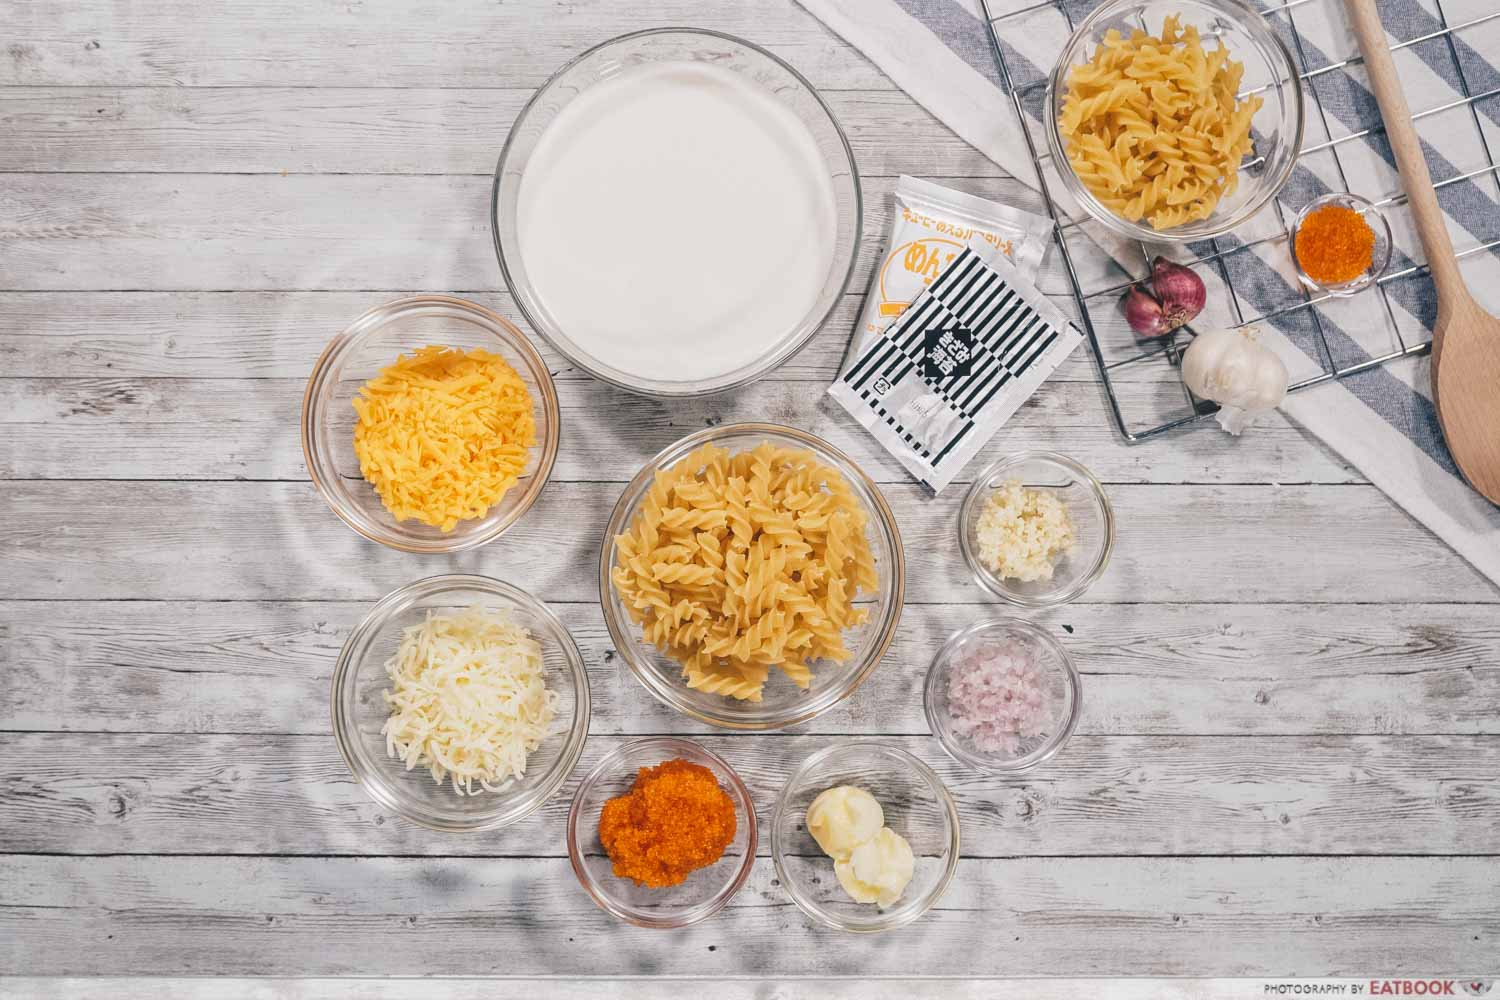 rice cooker mentaiko mac and cheese - flatlay